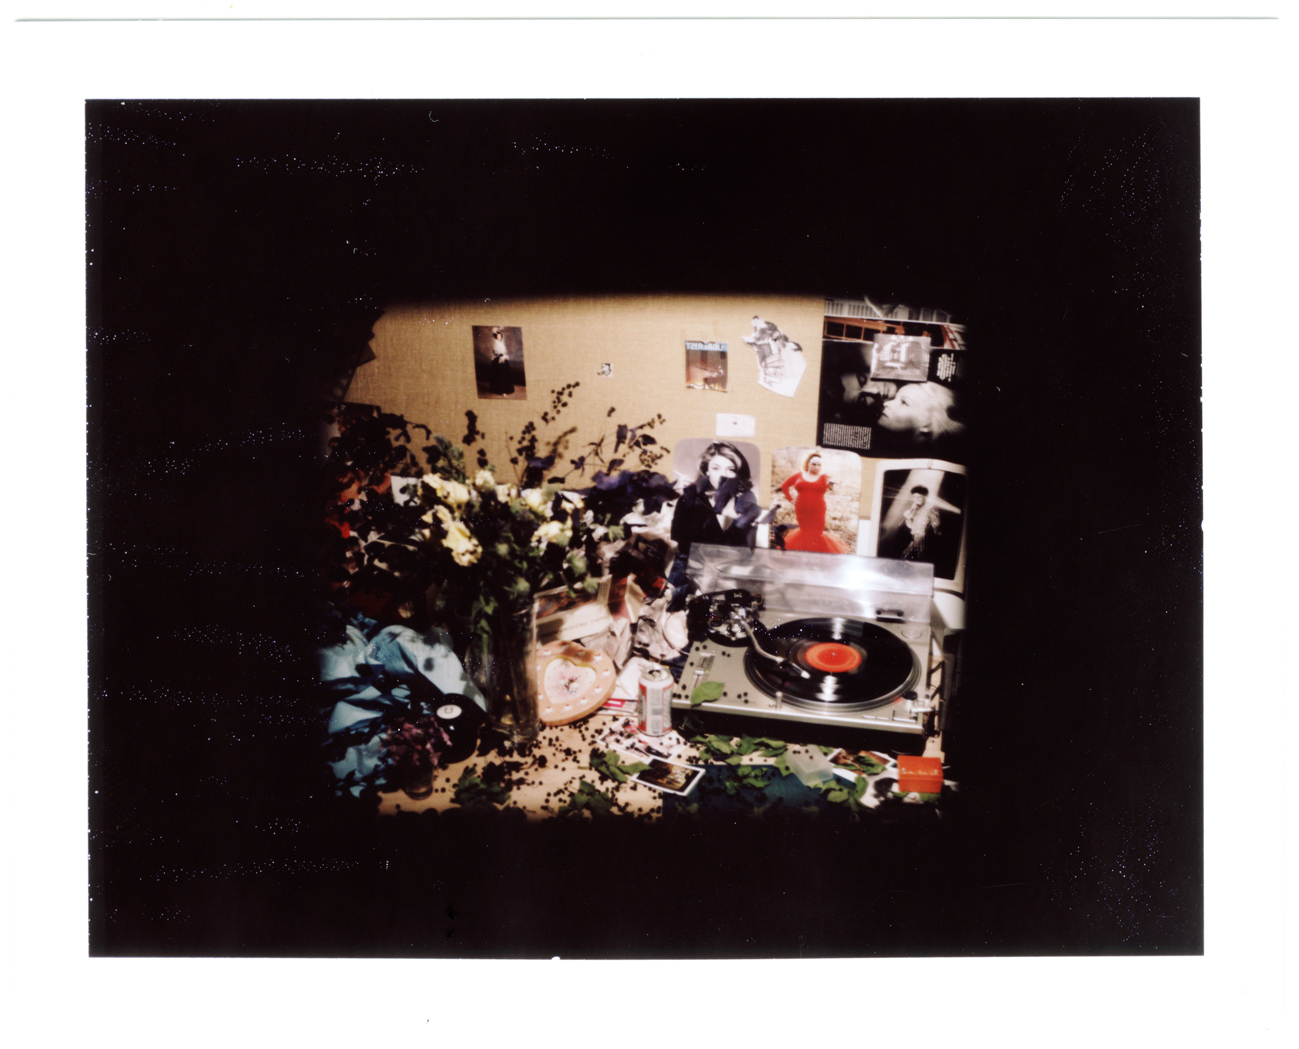 638_polaroid-still-life-01copy